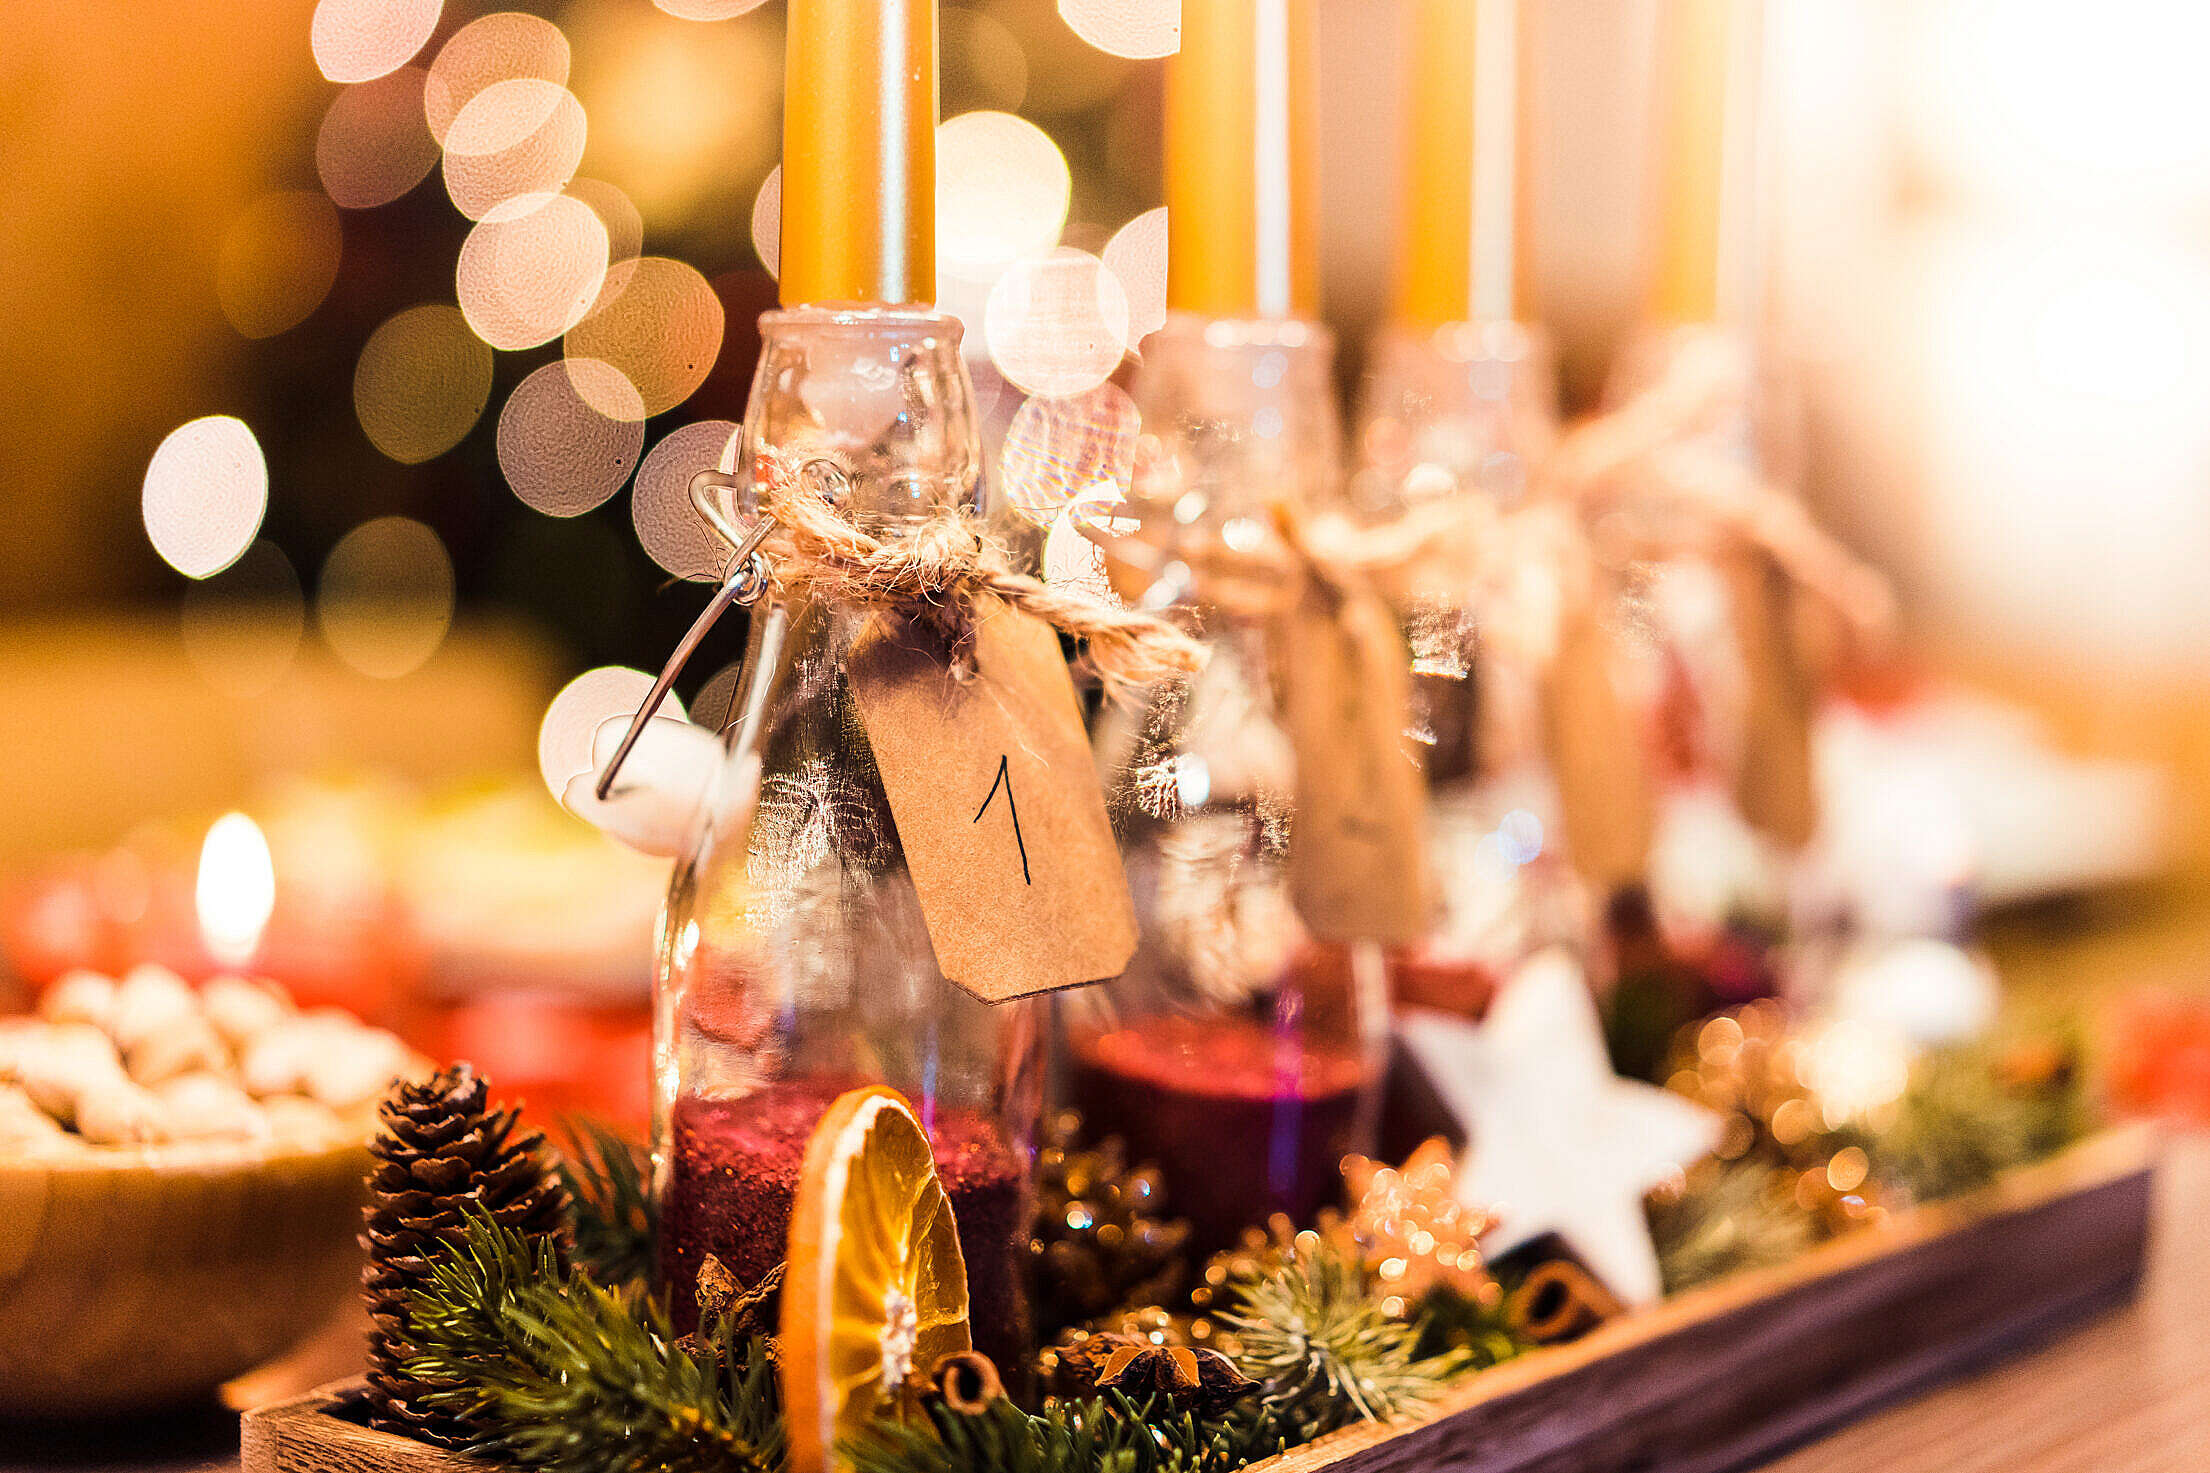 Handmade Do-It-Yourself Advent Candle Free Stock Photo